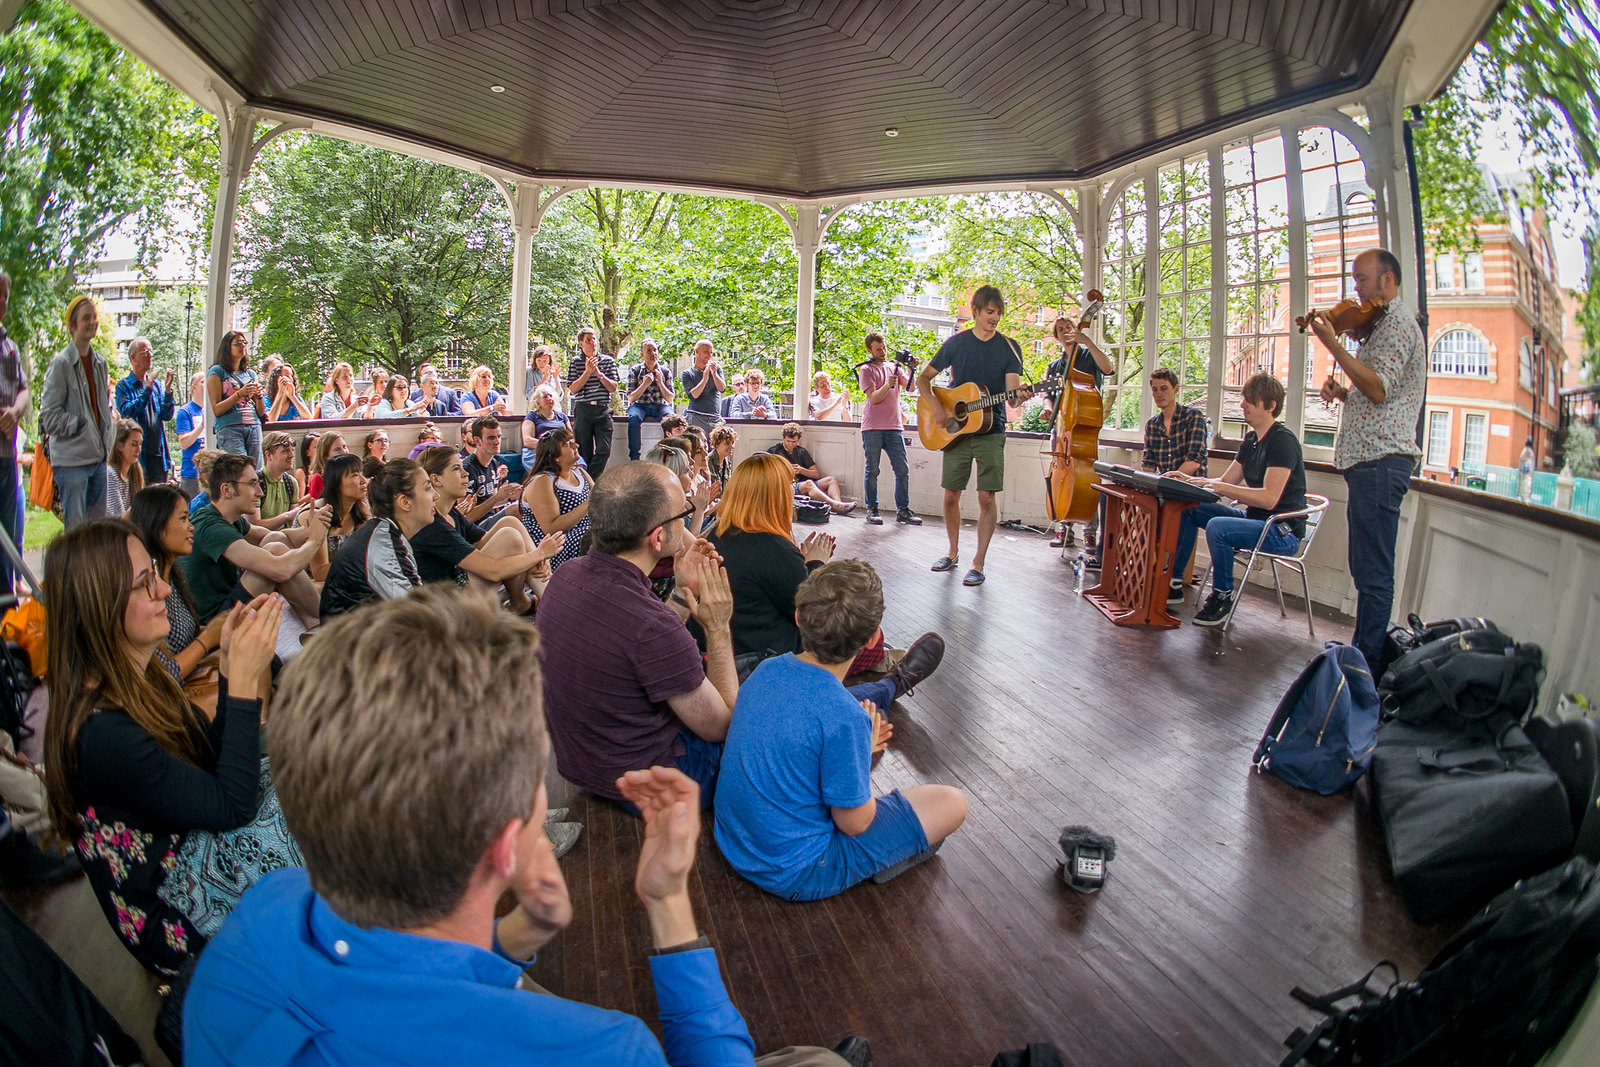 Bandstand Busking: The Leisure Society